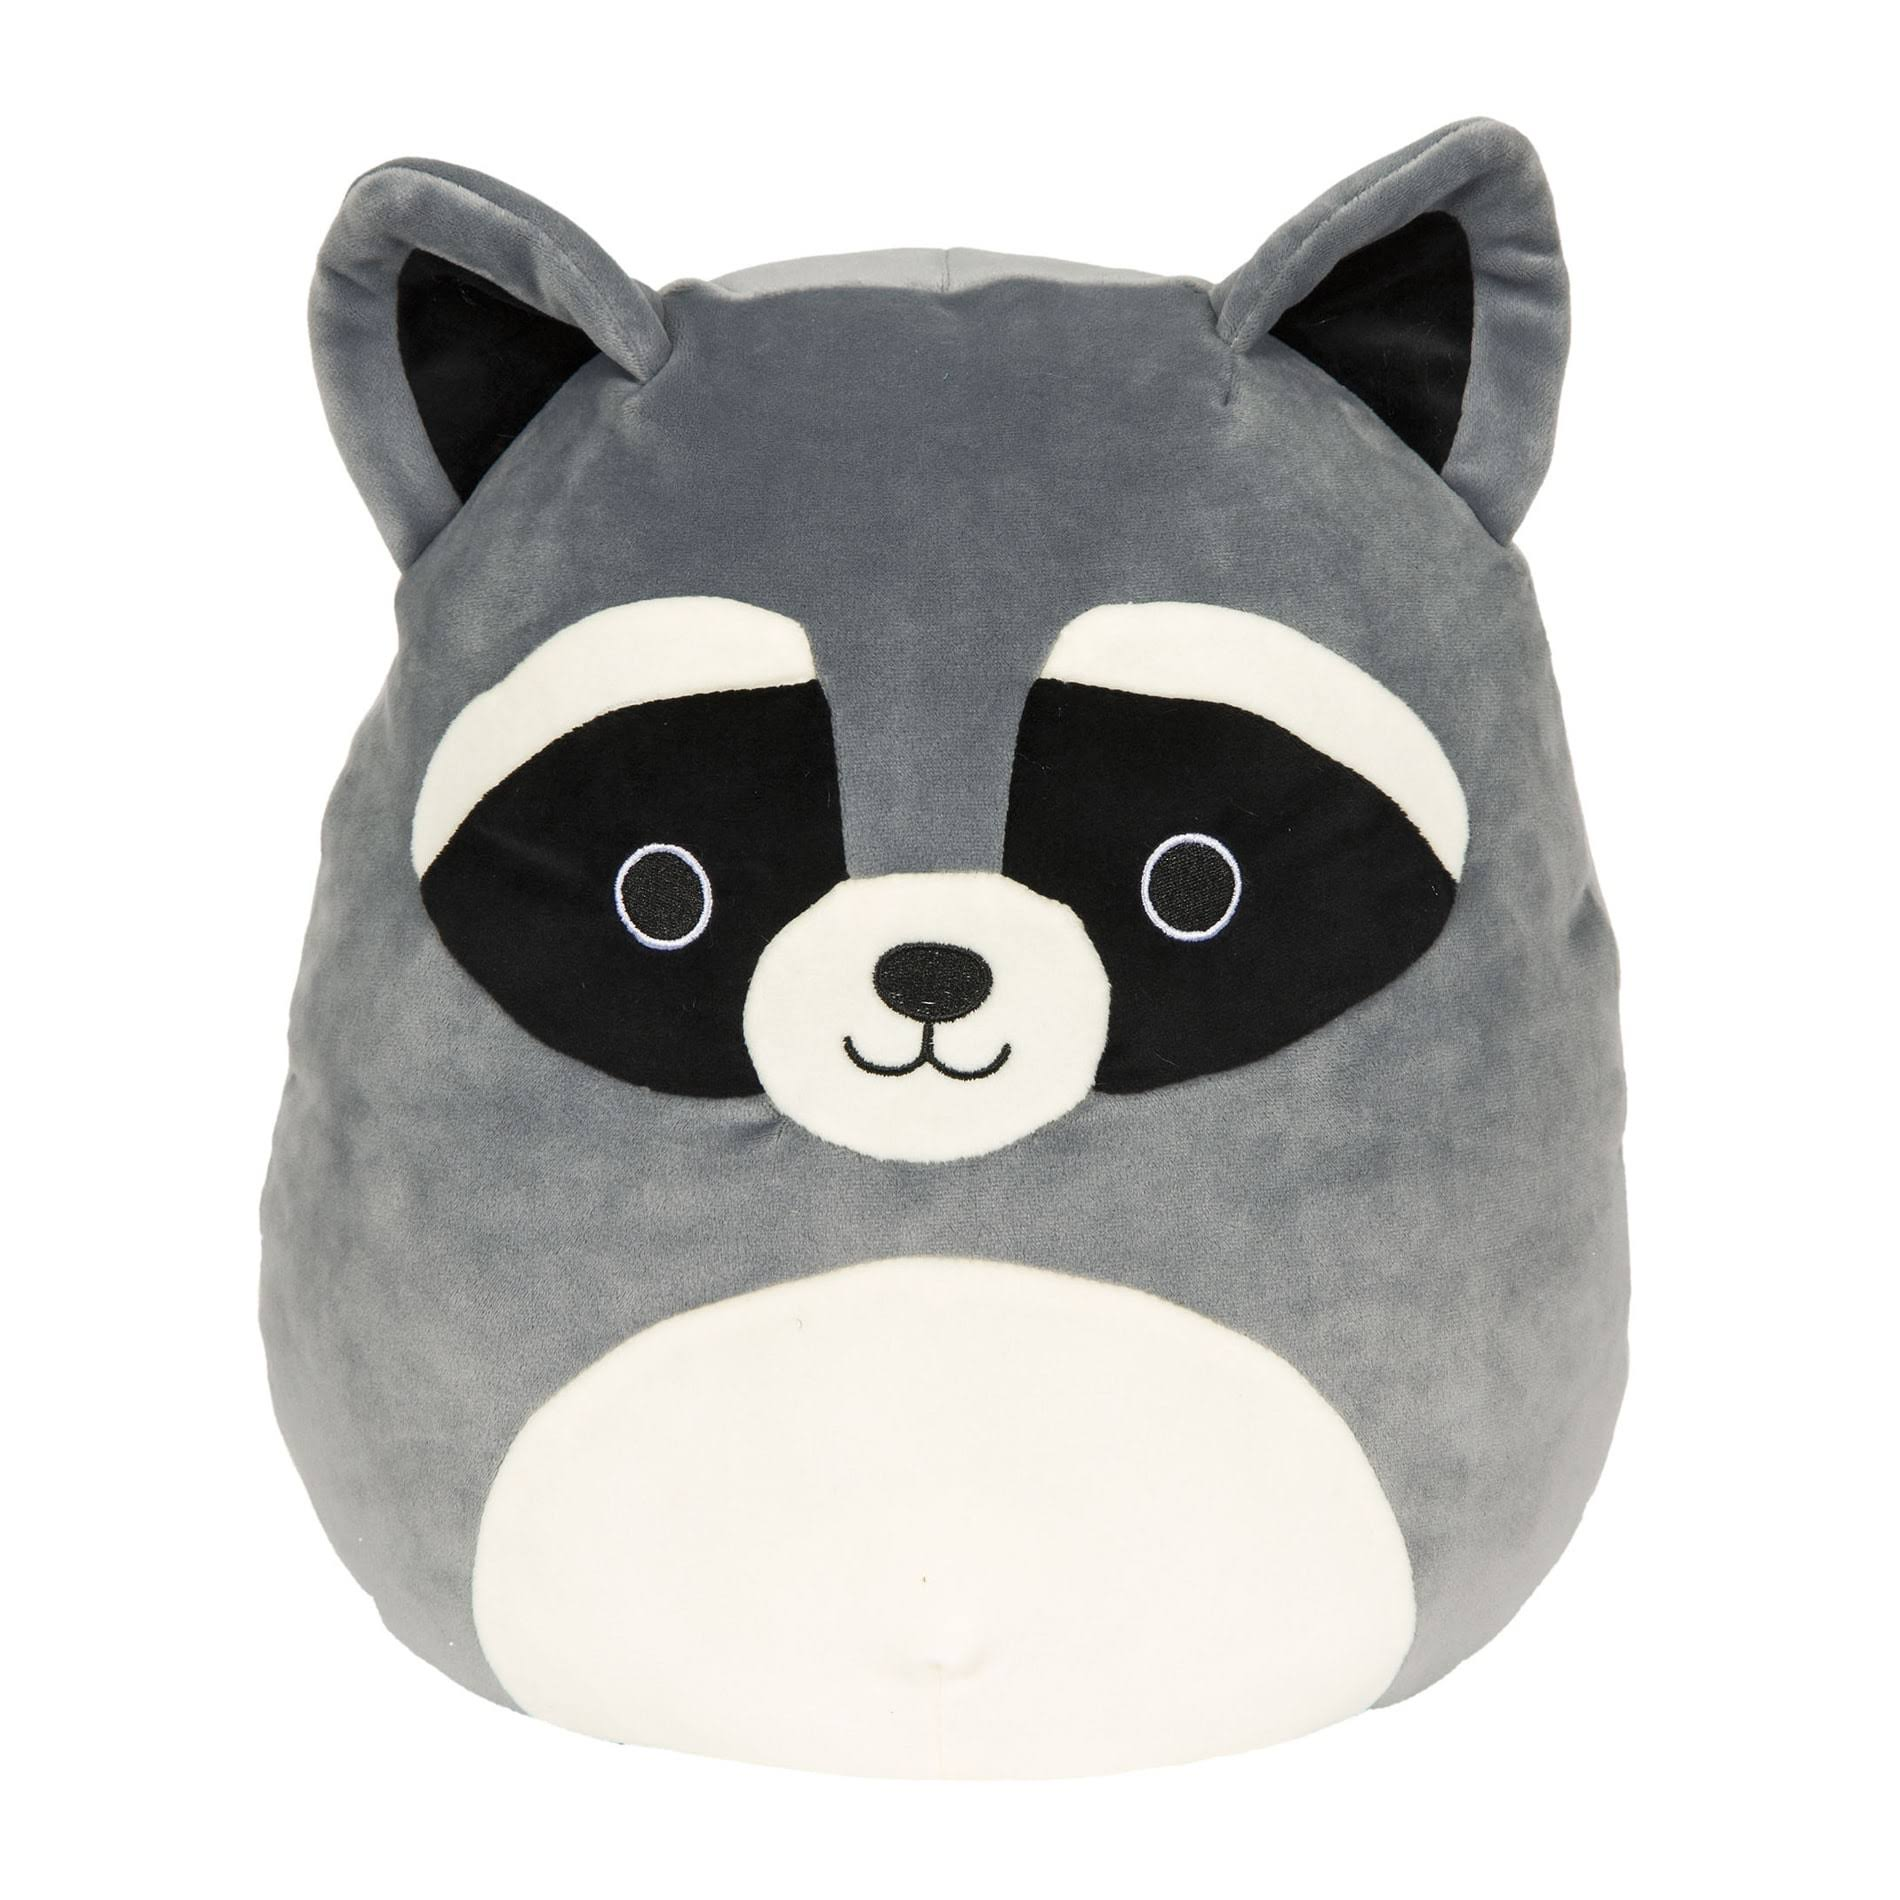 Squishmallow 16 inch Pillow Plush | Rocky The Grey Raccoon